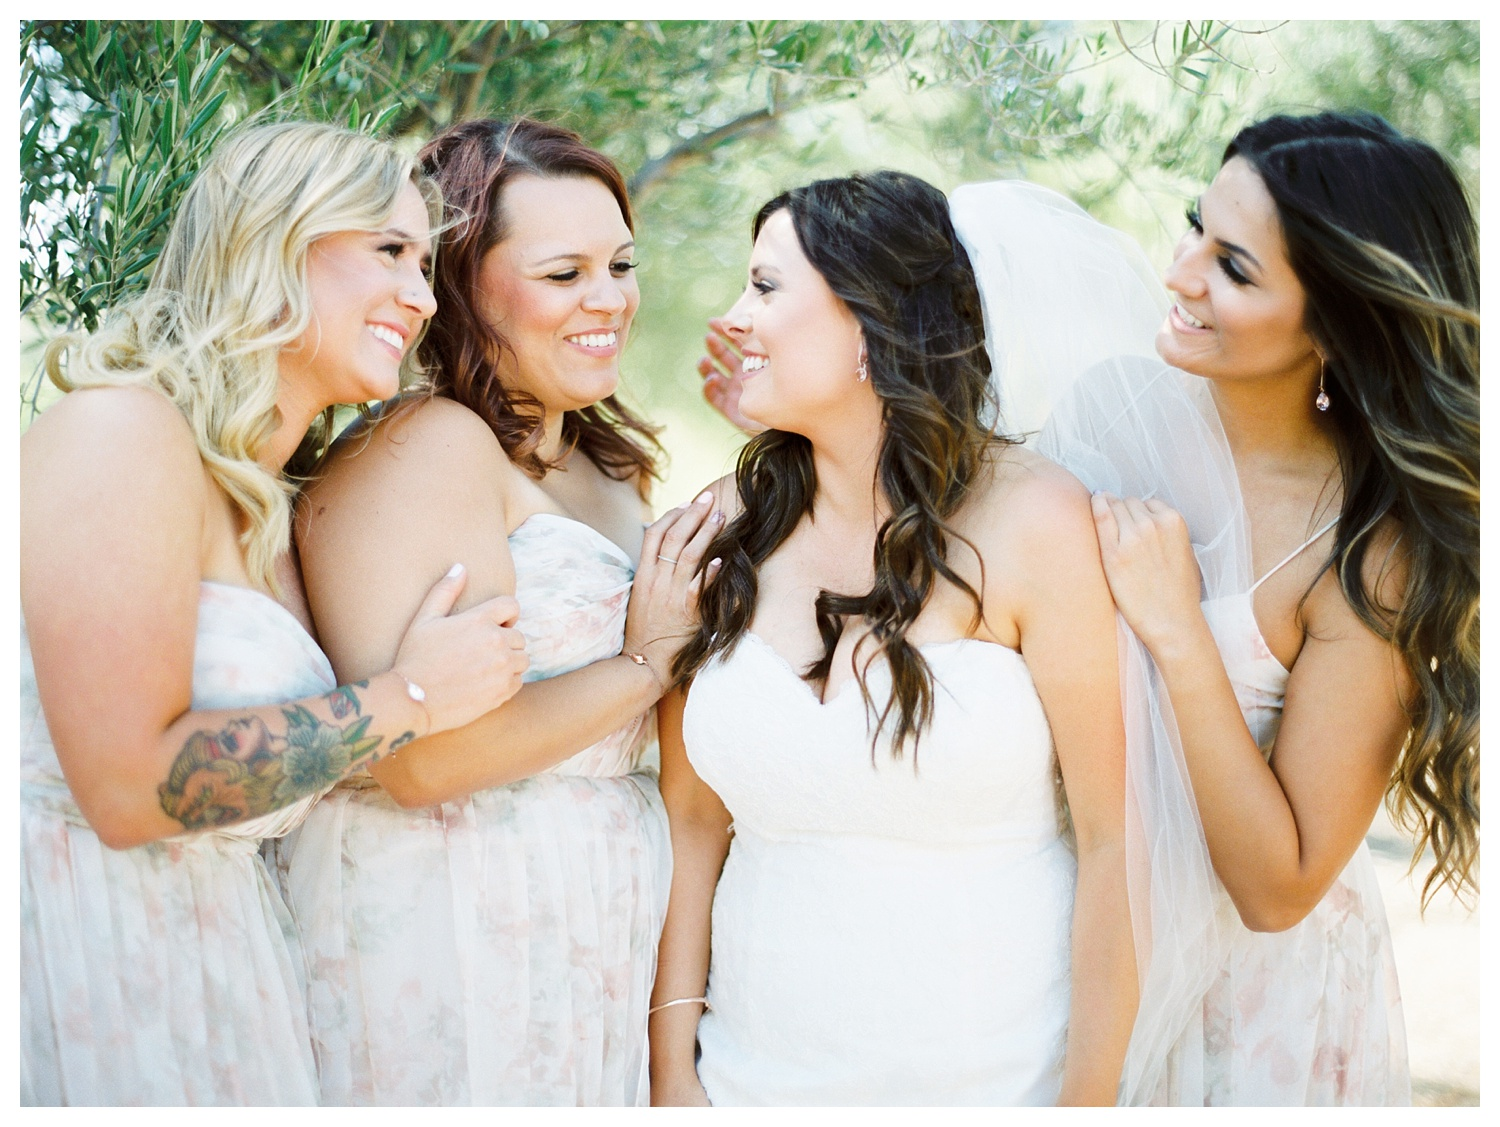 Paso Robles Wedding Photographer, paso robles wedding photographers, paso robles wedding photography, san luis obispo wedding photographers